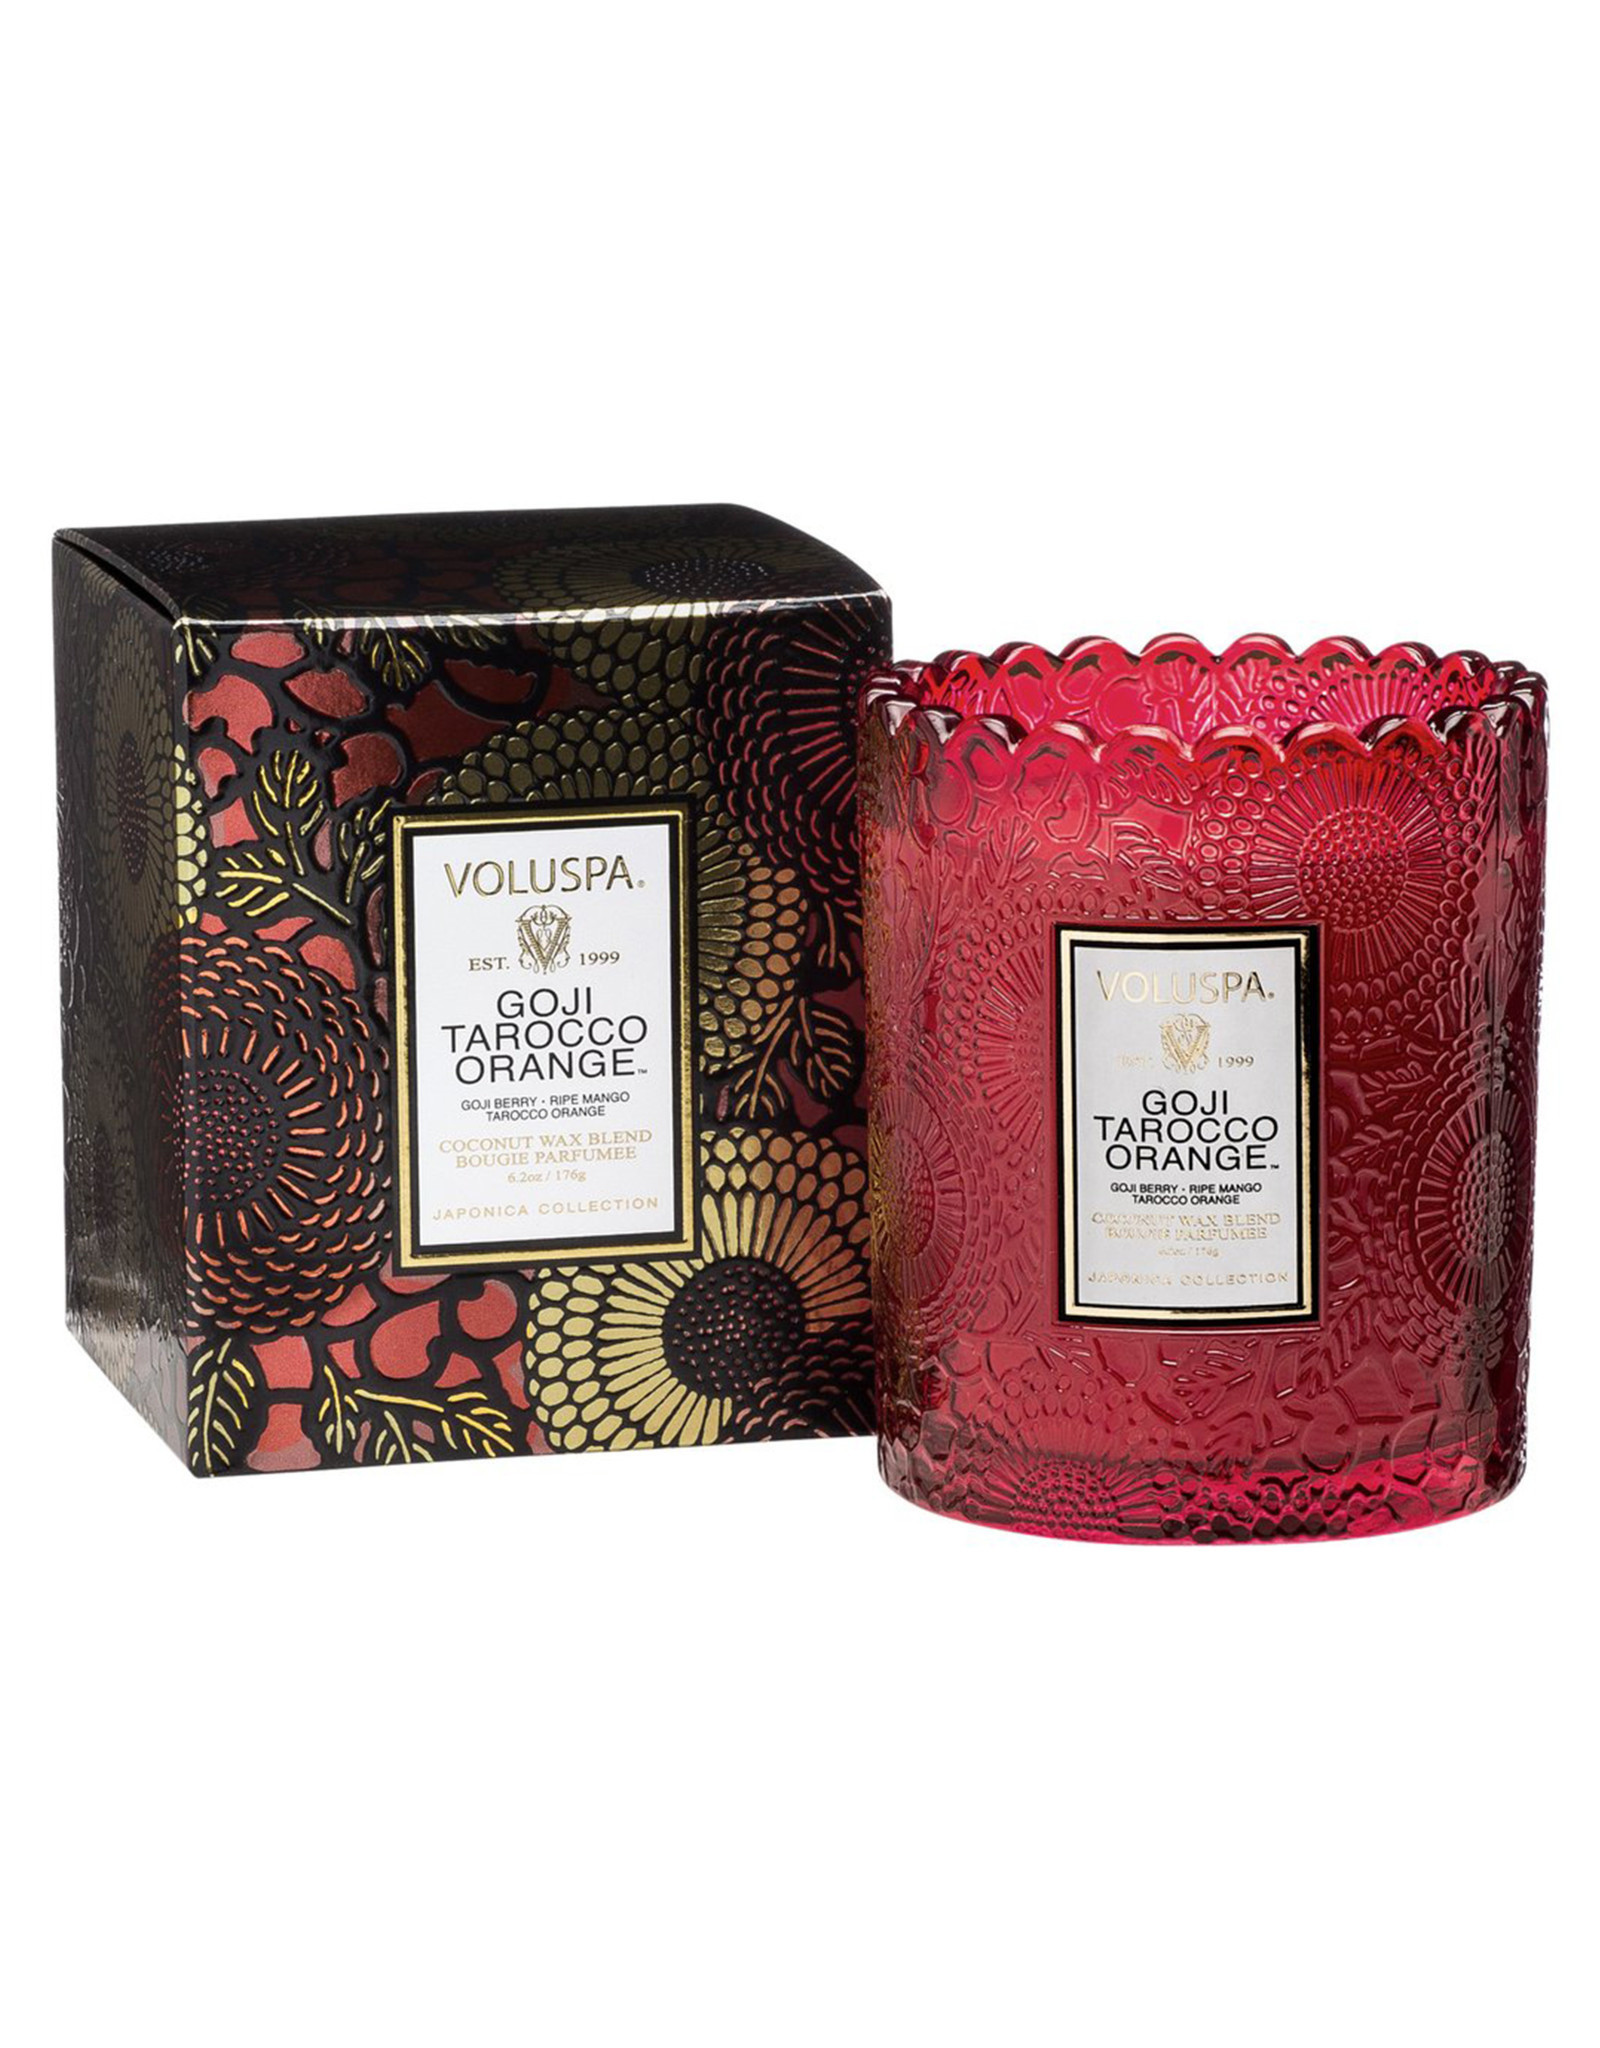 VOLUSPA GOJI TAROCCO ORANGE SCALLOPED EDGE CANDLE